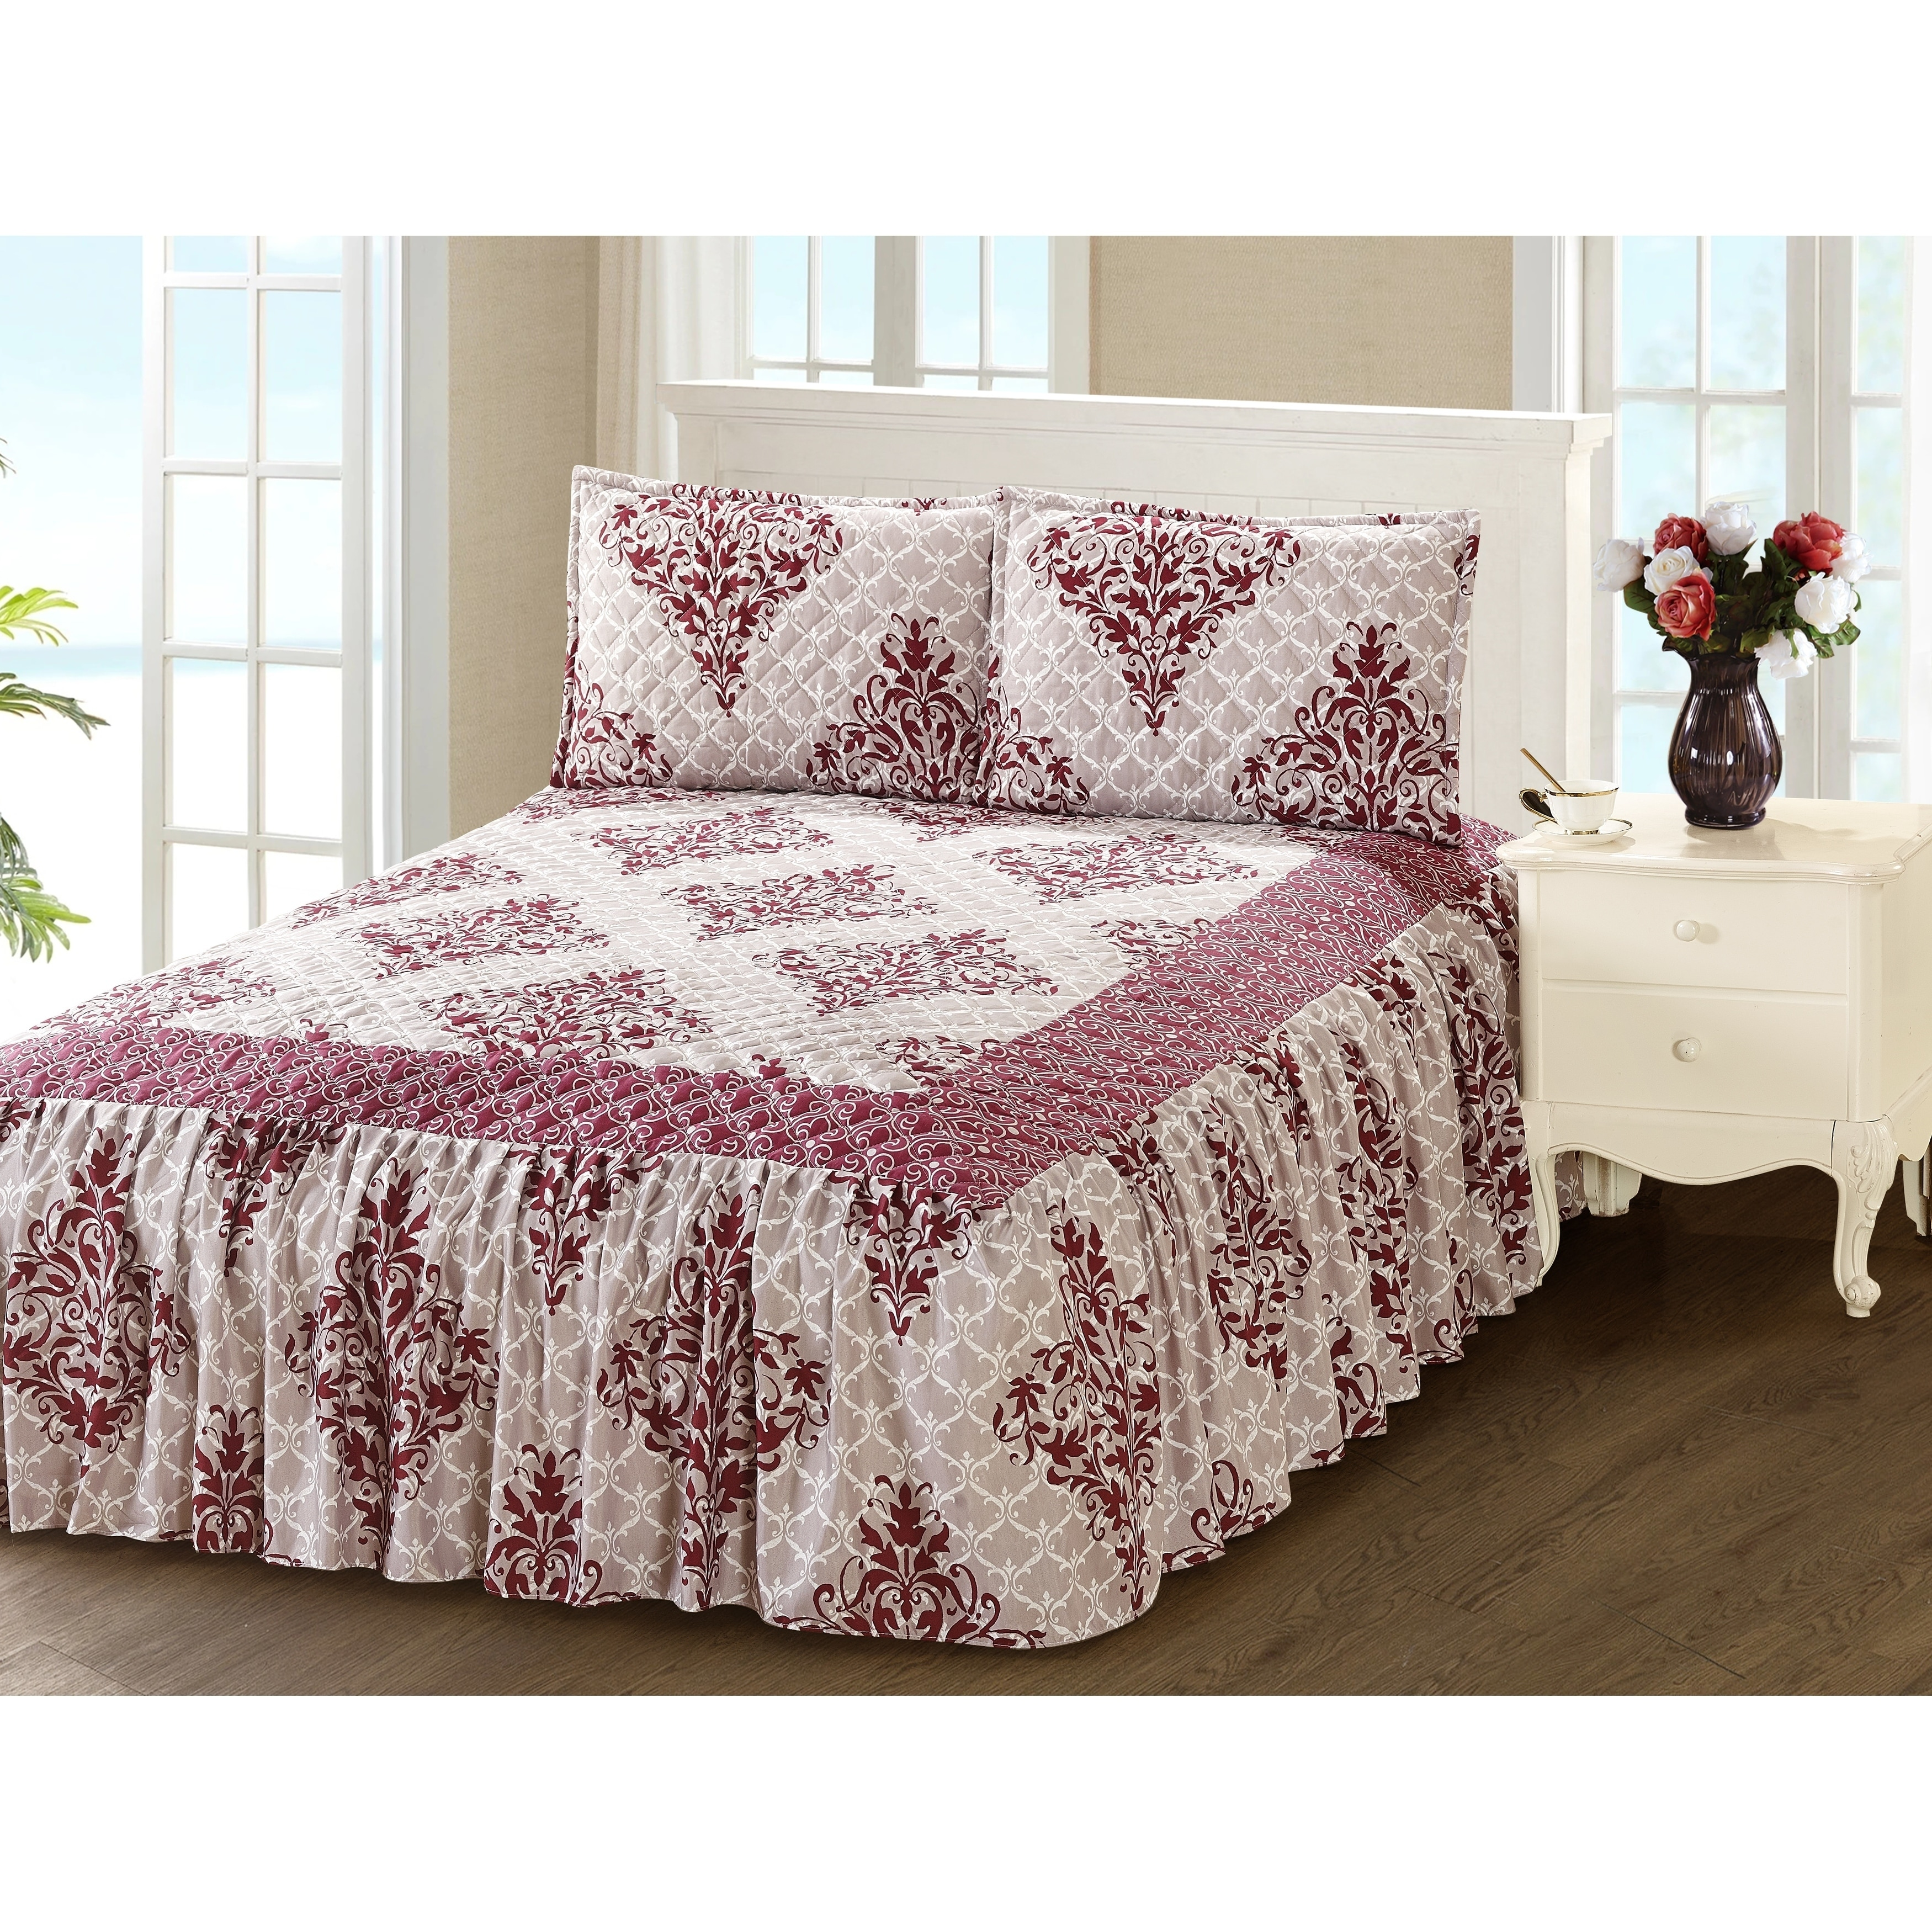 Khloe 3 Piece Bedspread Set With Attached Bed Skirt Maroon Damask